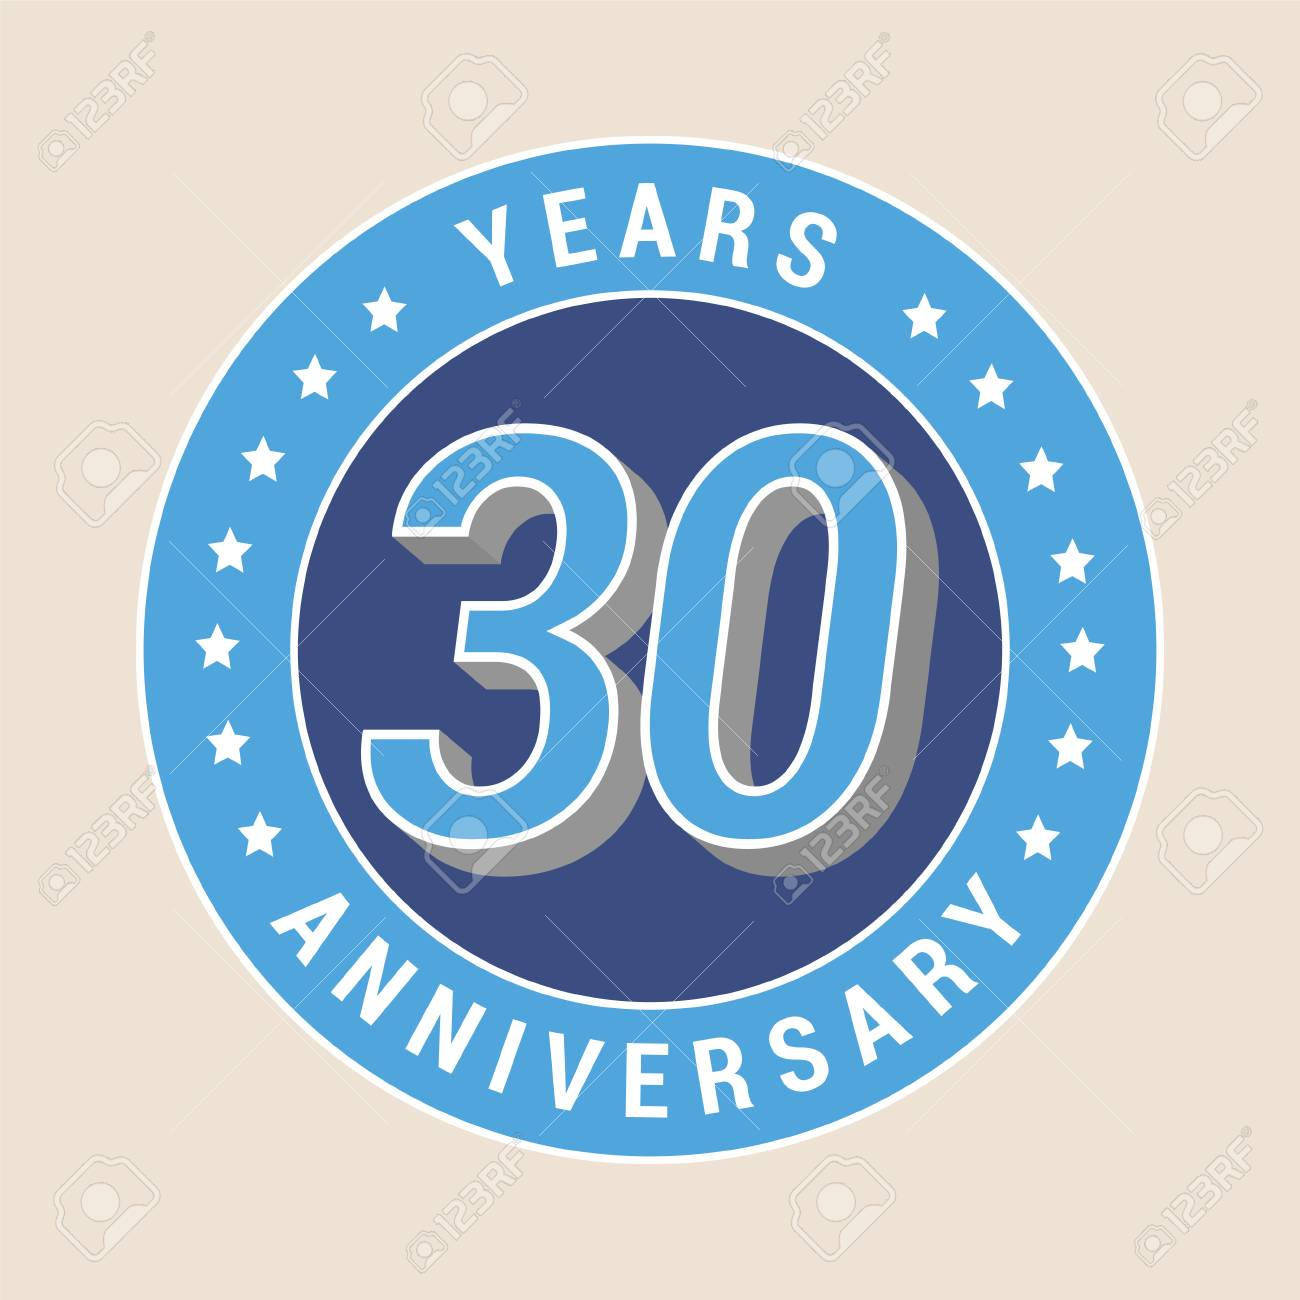 30 years anniversary vector icon emblem design element with